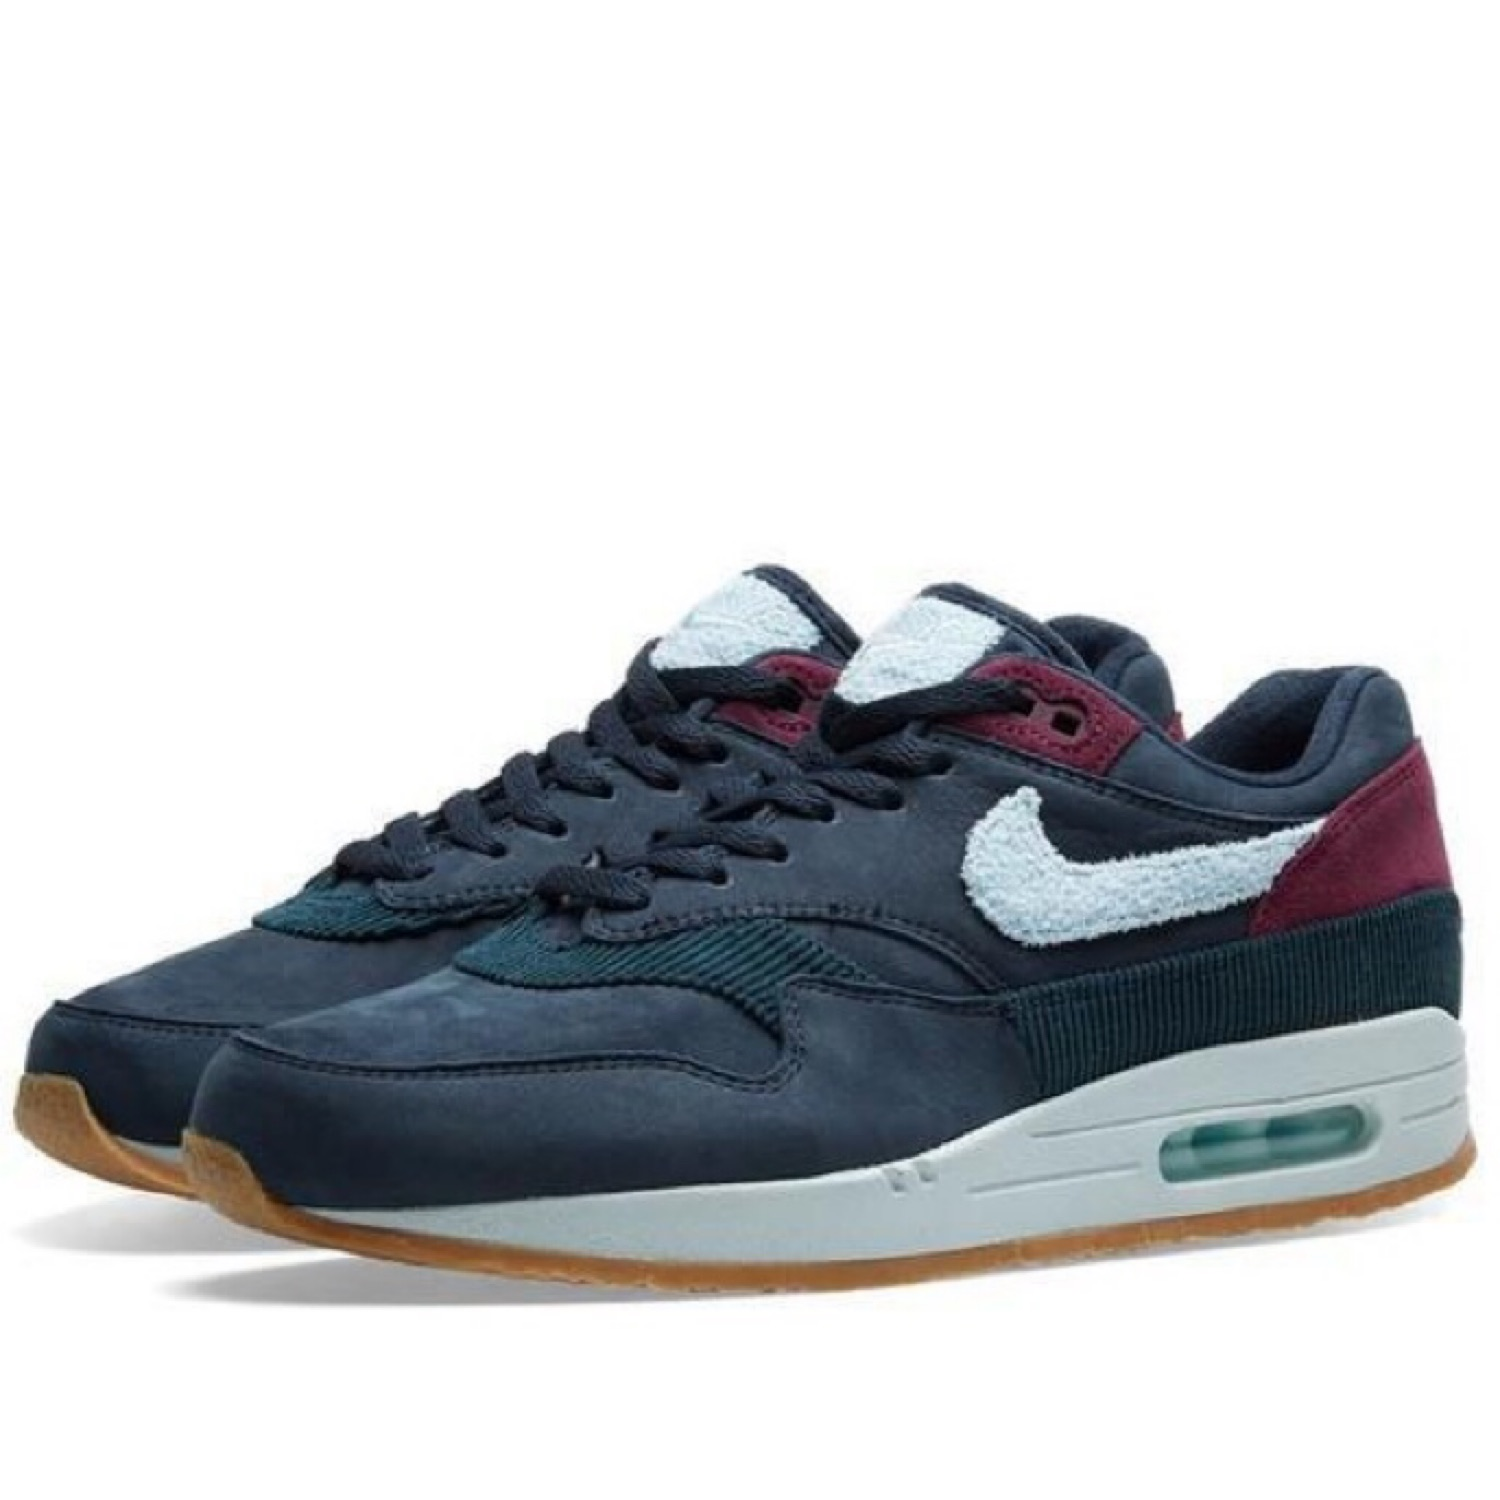 fashion style sale online hot products Nike Air Max 1 Premium Crepe Pack Dark Obsidian